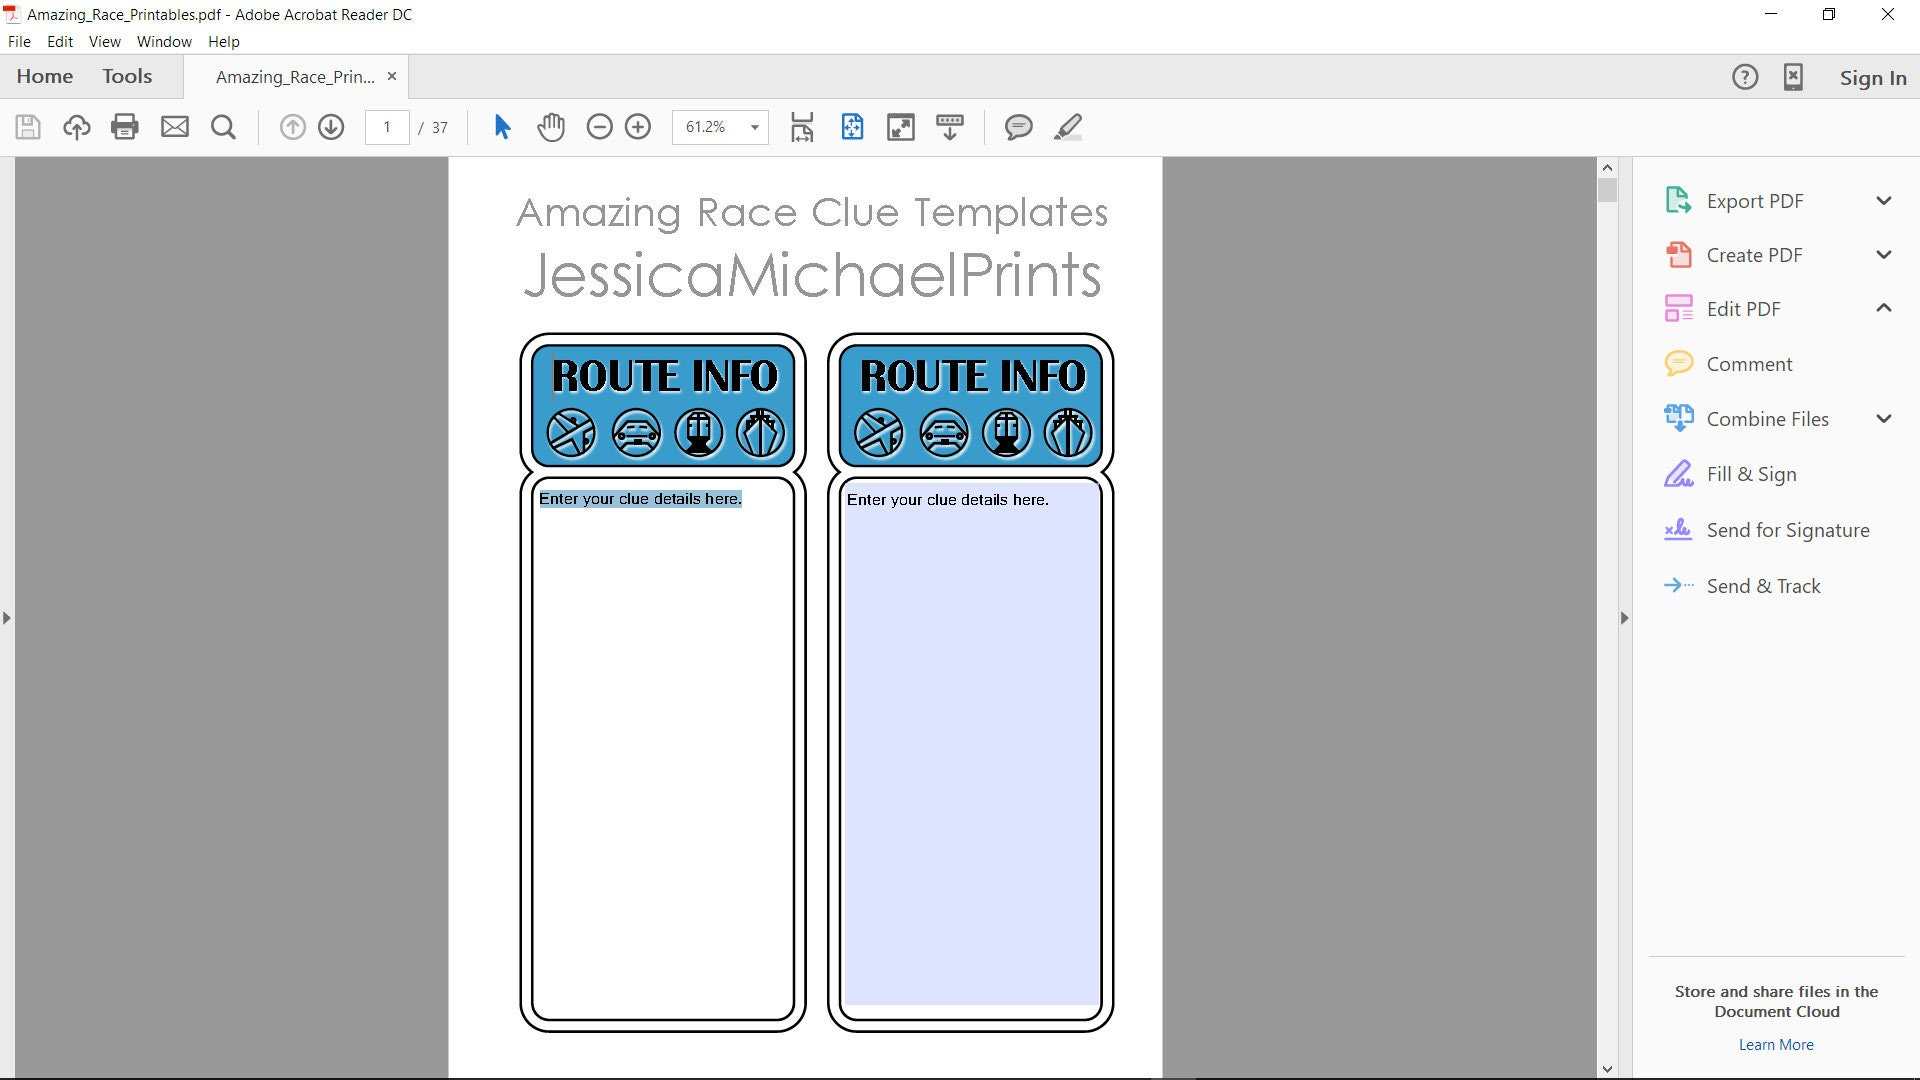 Amazing race templates pdf topsimages limited time the amazing race party printables digital etsy jpg 1920x1080 amazing race templates pdf maxwellsz